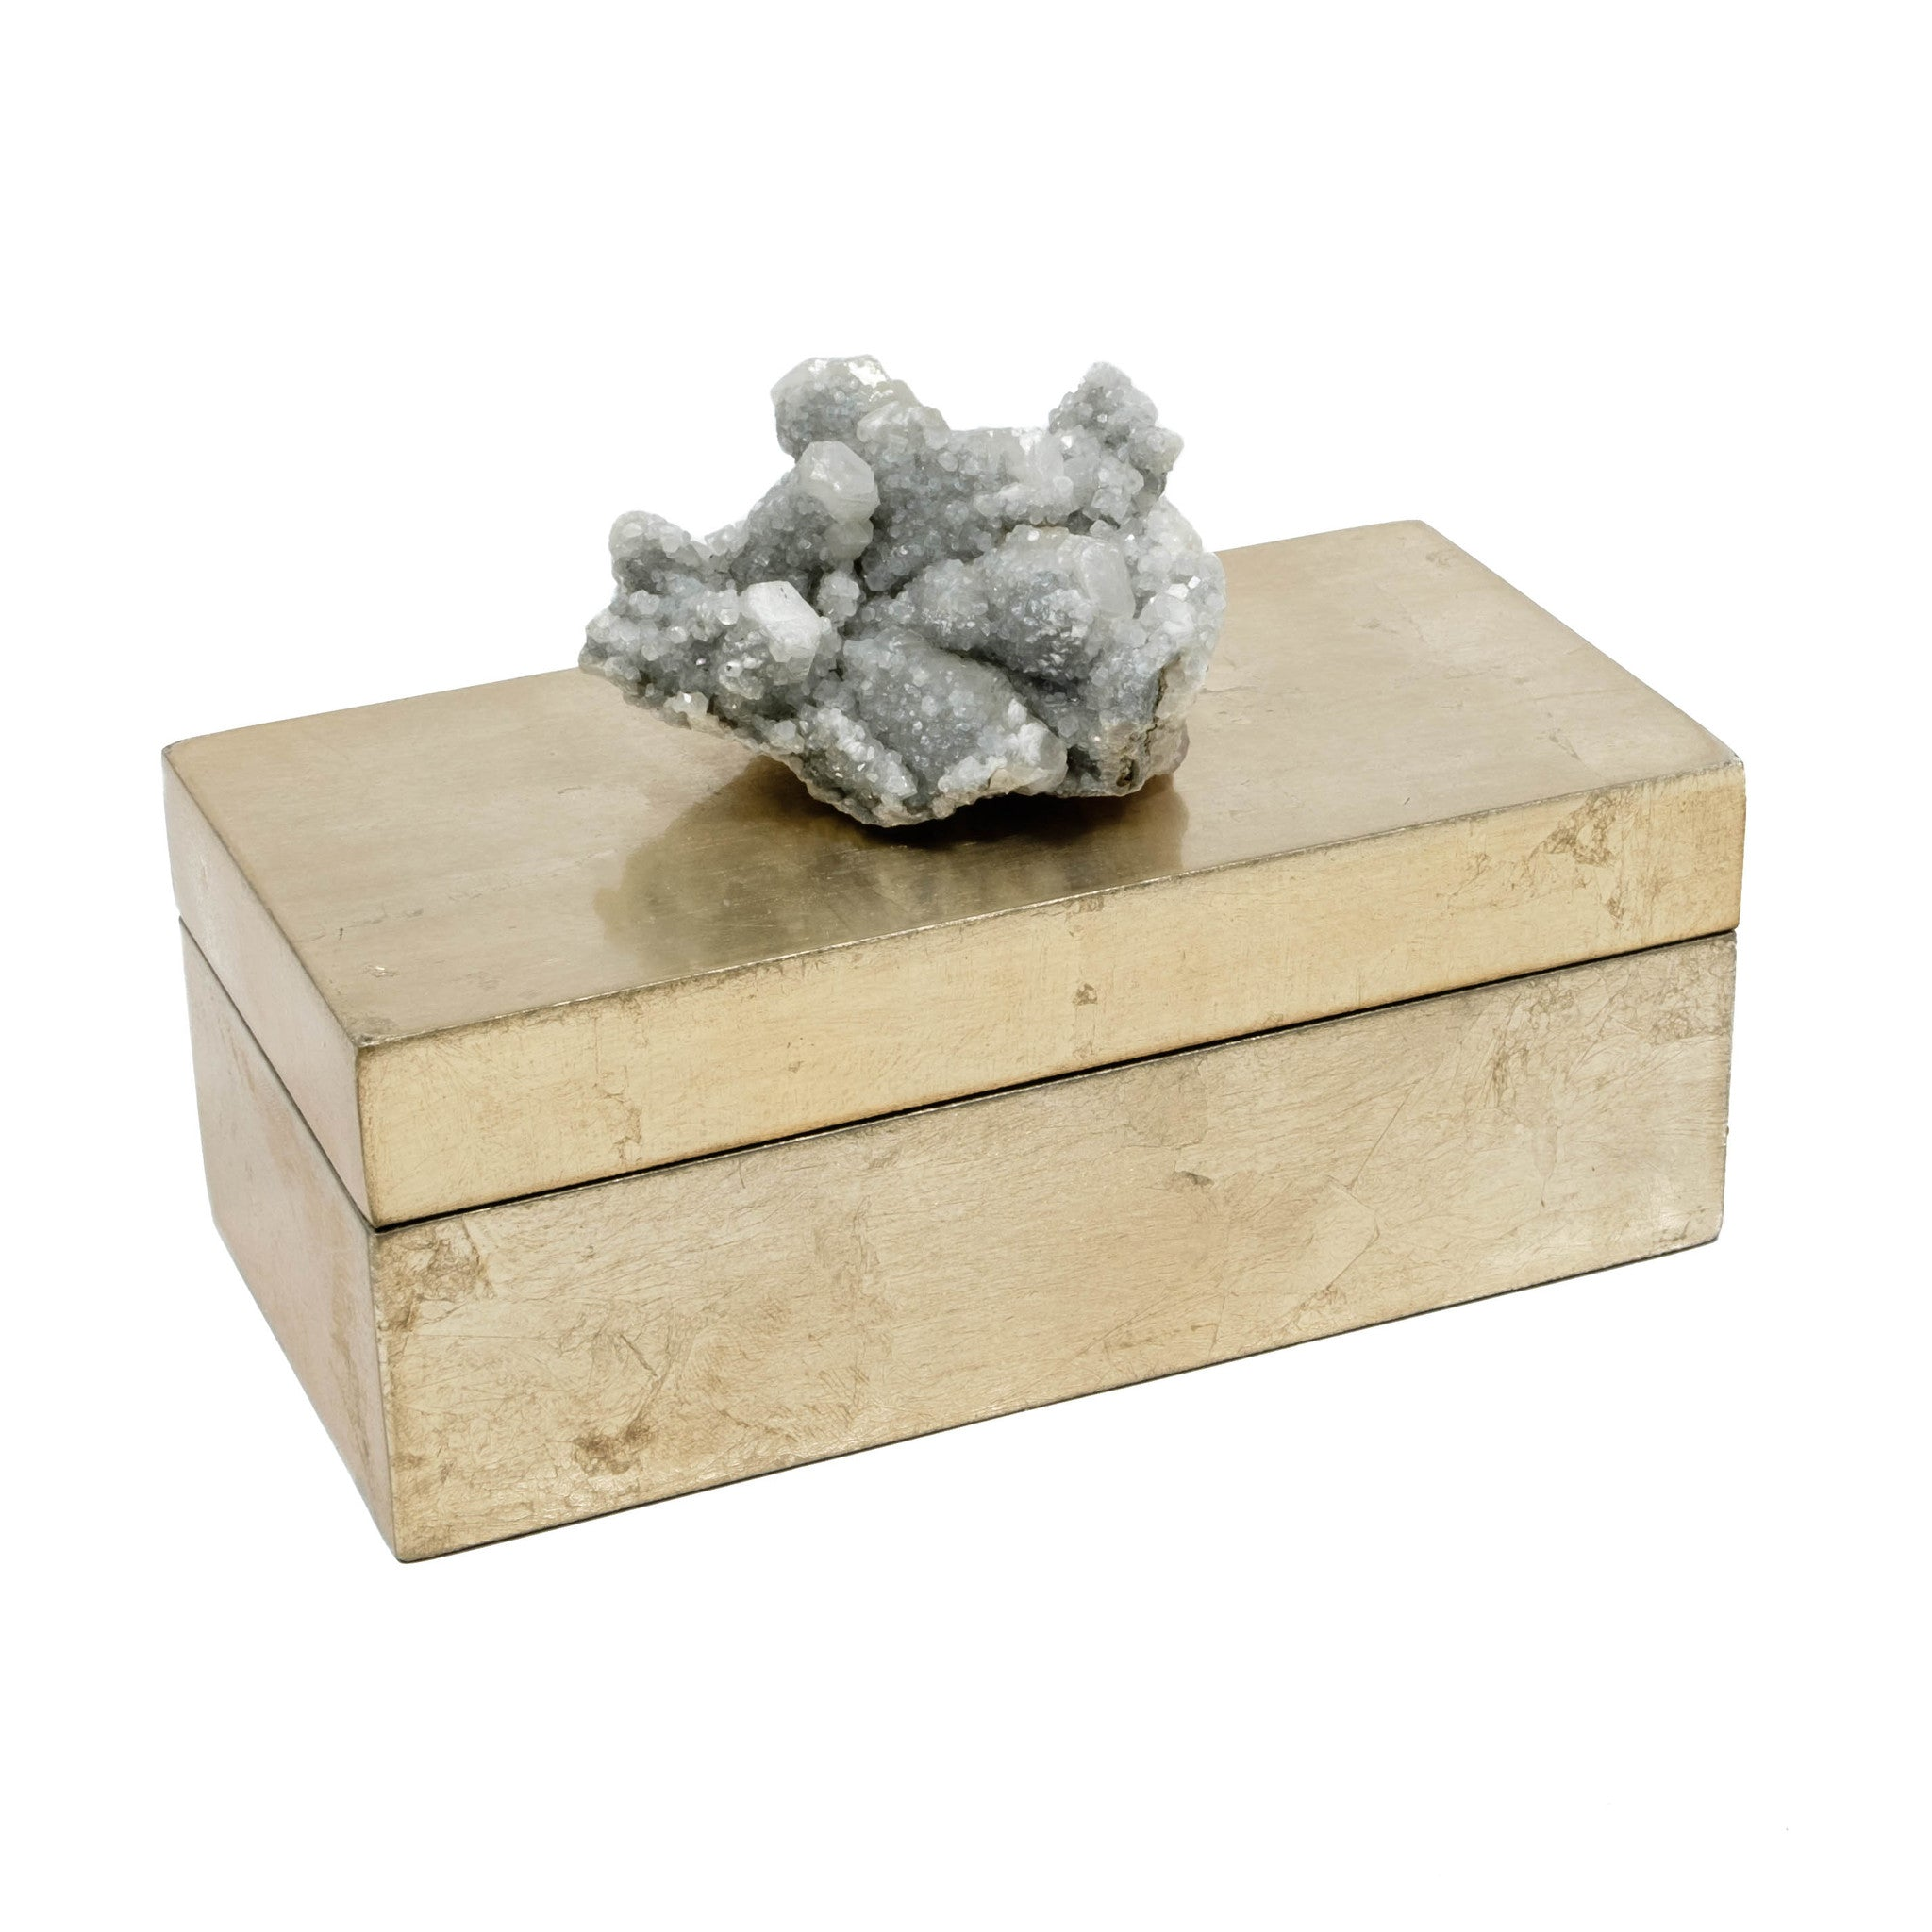 Brushed Gold Box with Gray Apophyllite Crystal